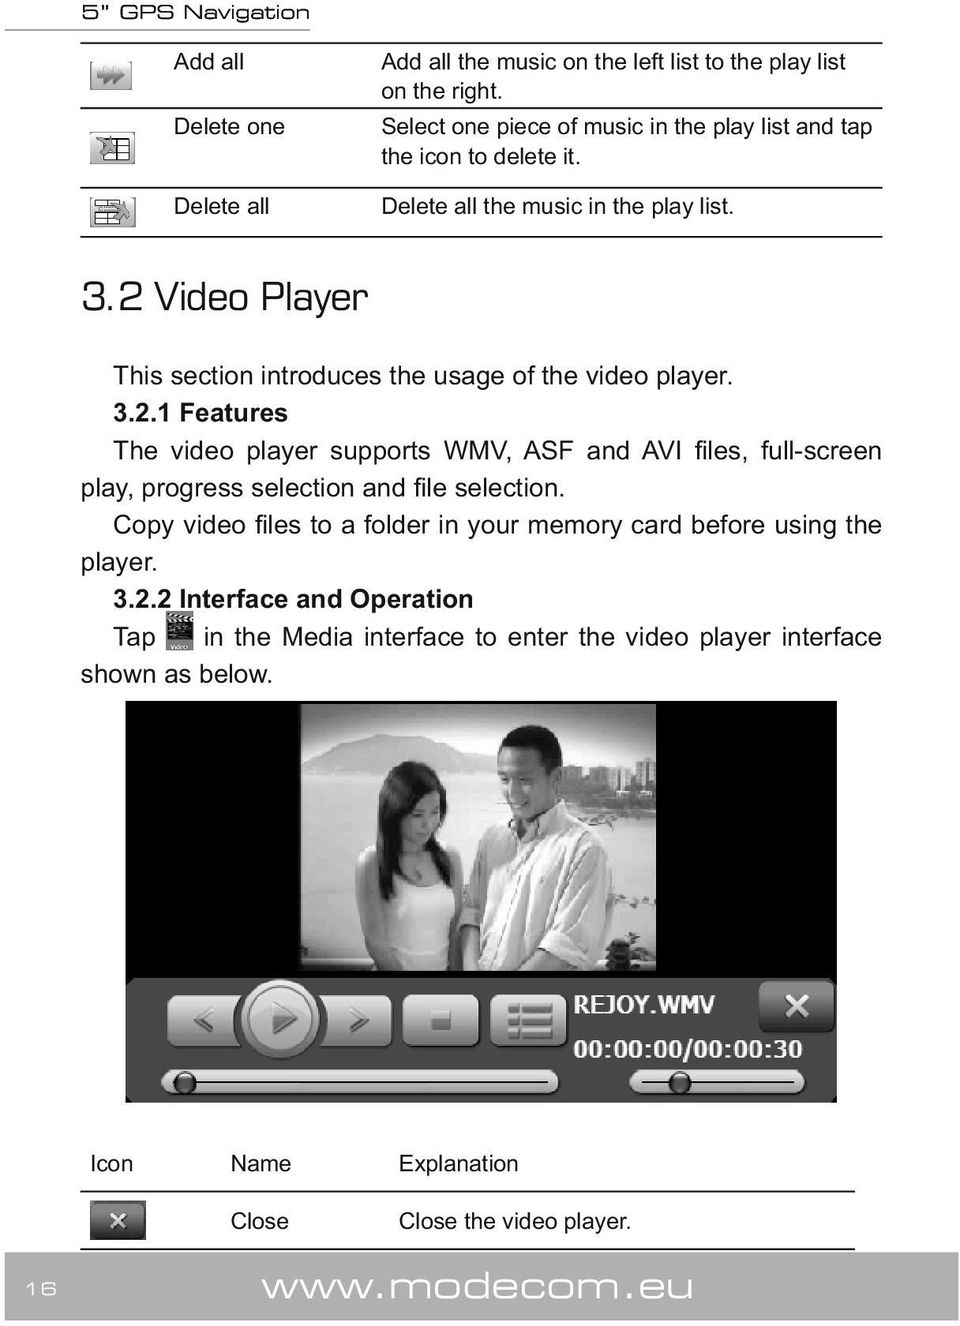 2 Video Player This section introduces the usage of the video player. 3.2.1 Features The video player supports WMV, ASF and AVI files, full-screen play, progress selection and file selection.